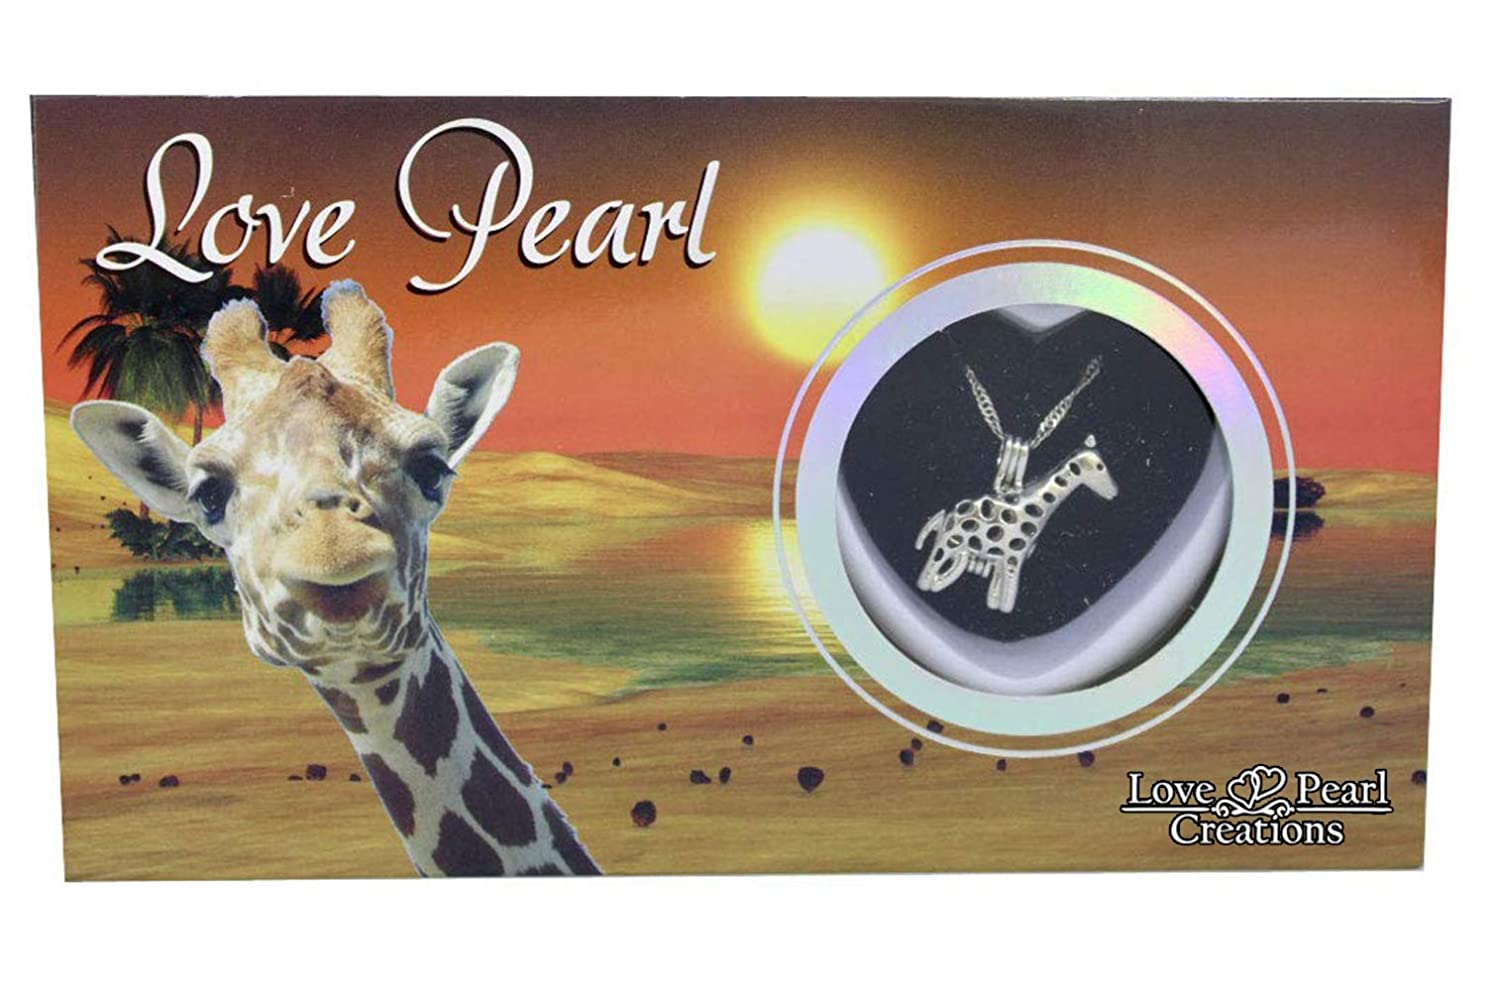 Love Pearl Creations Animals Wish Kit with Pendant Necklace (Giraffe)